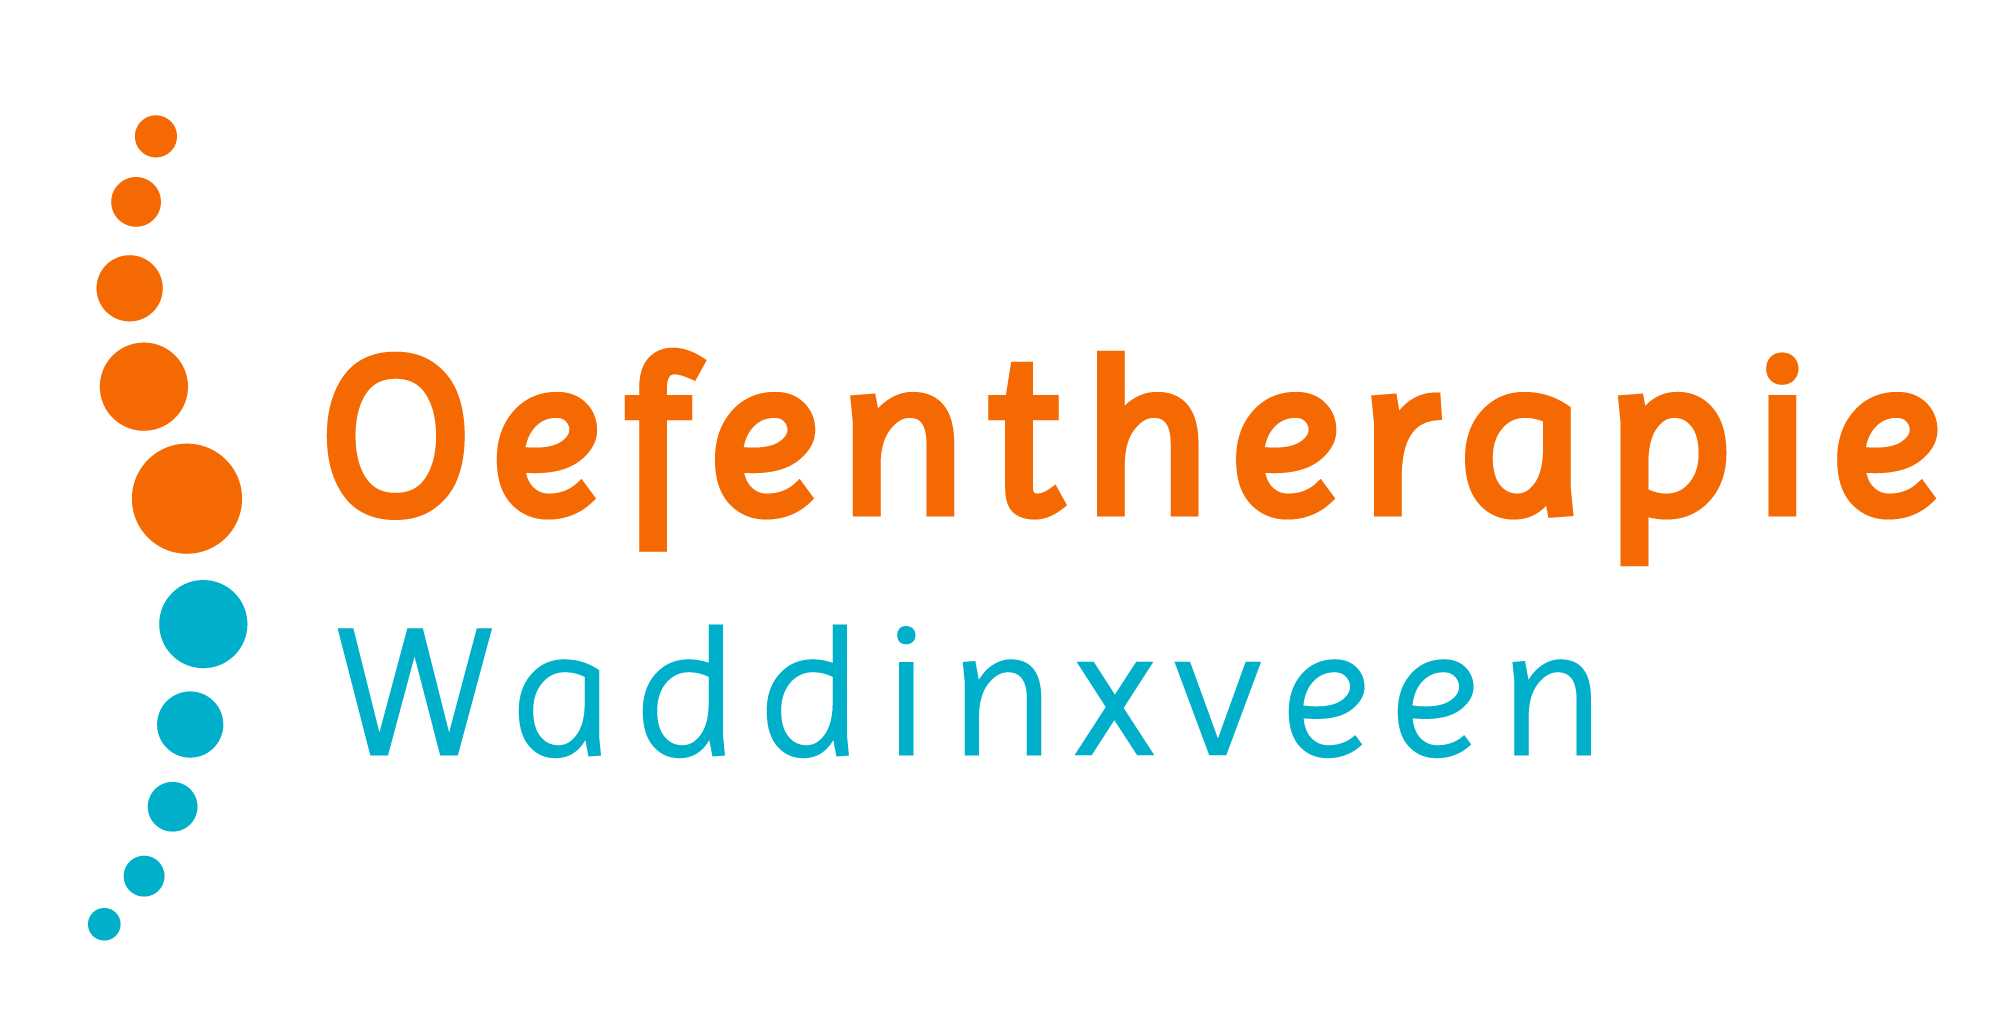 logo oefentherapie waddinxveen